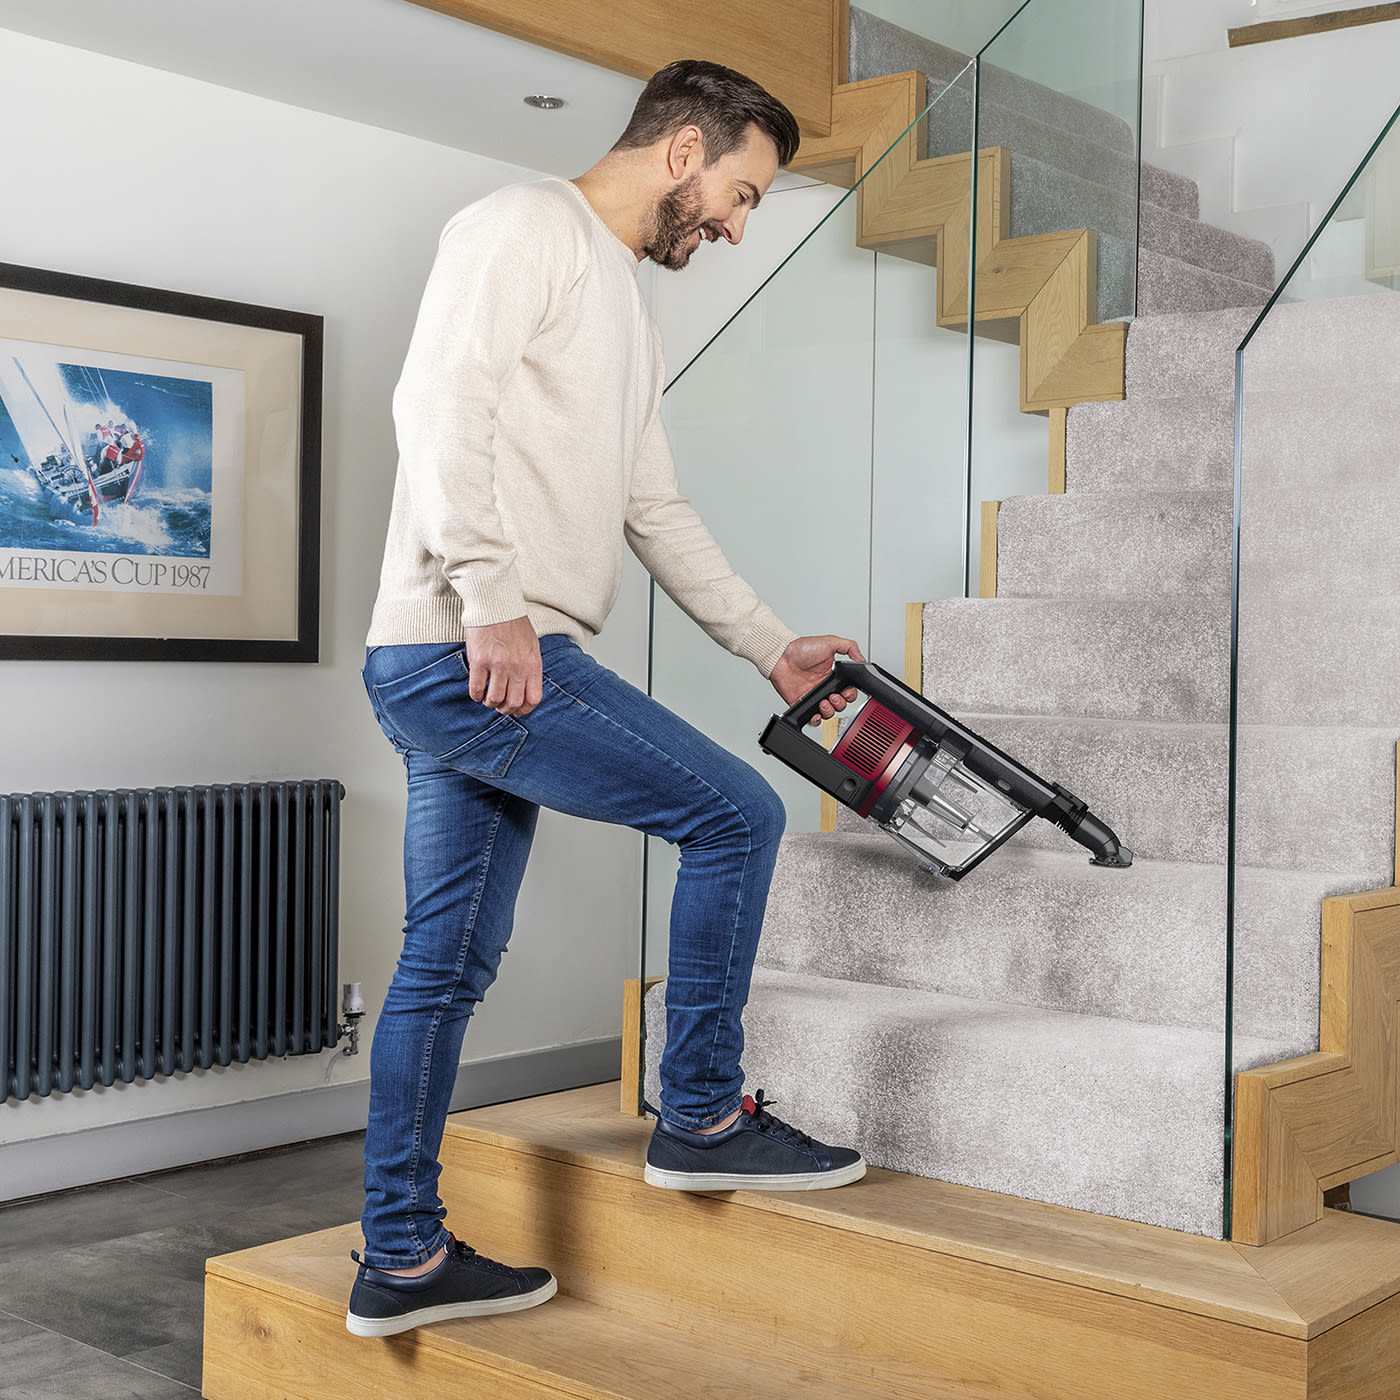 Effortless Whole-Home Cleaning